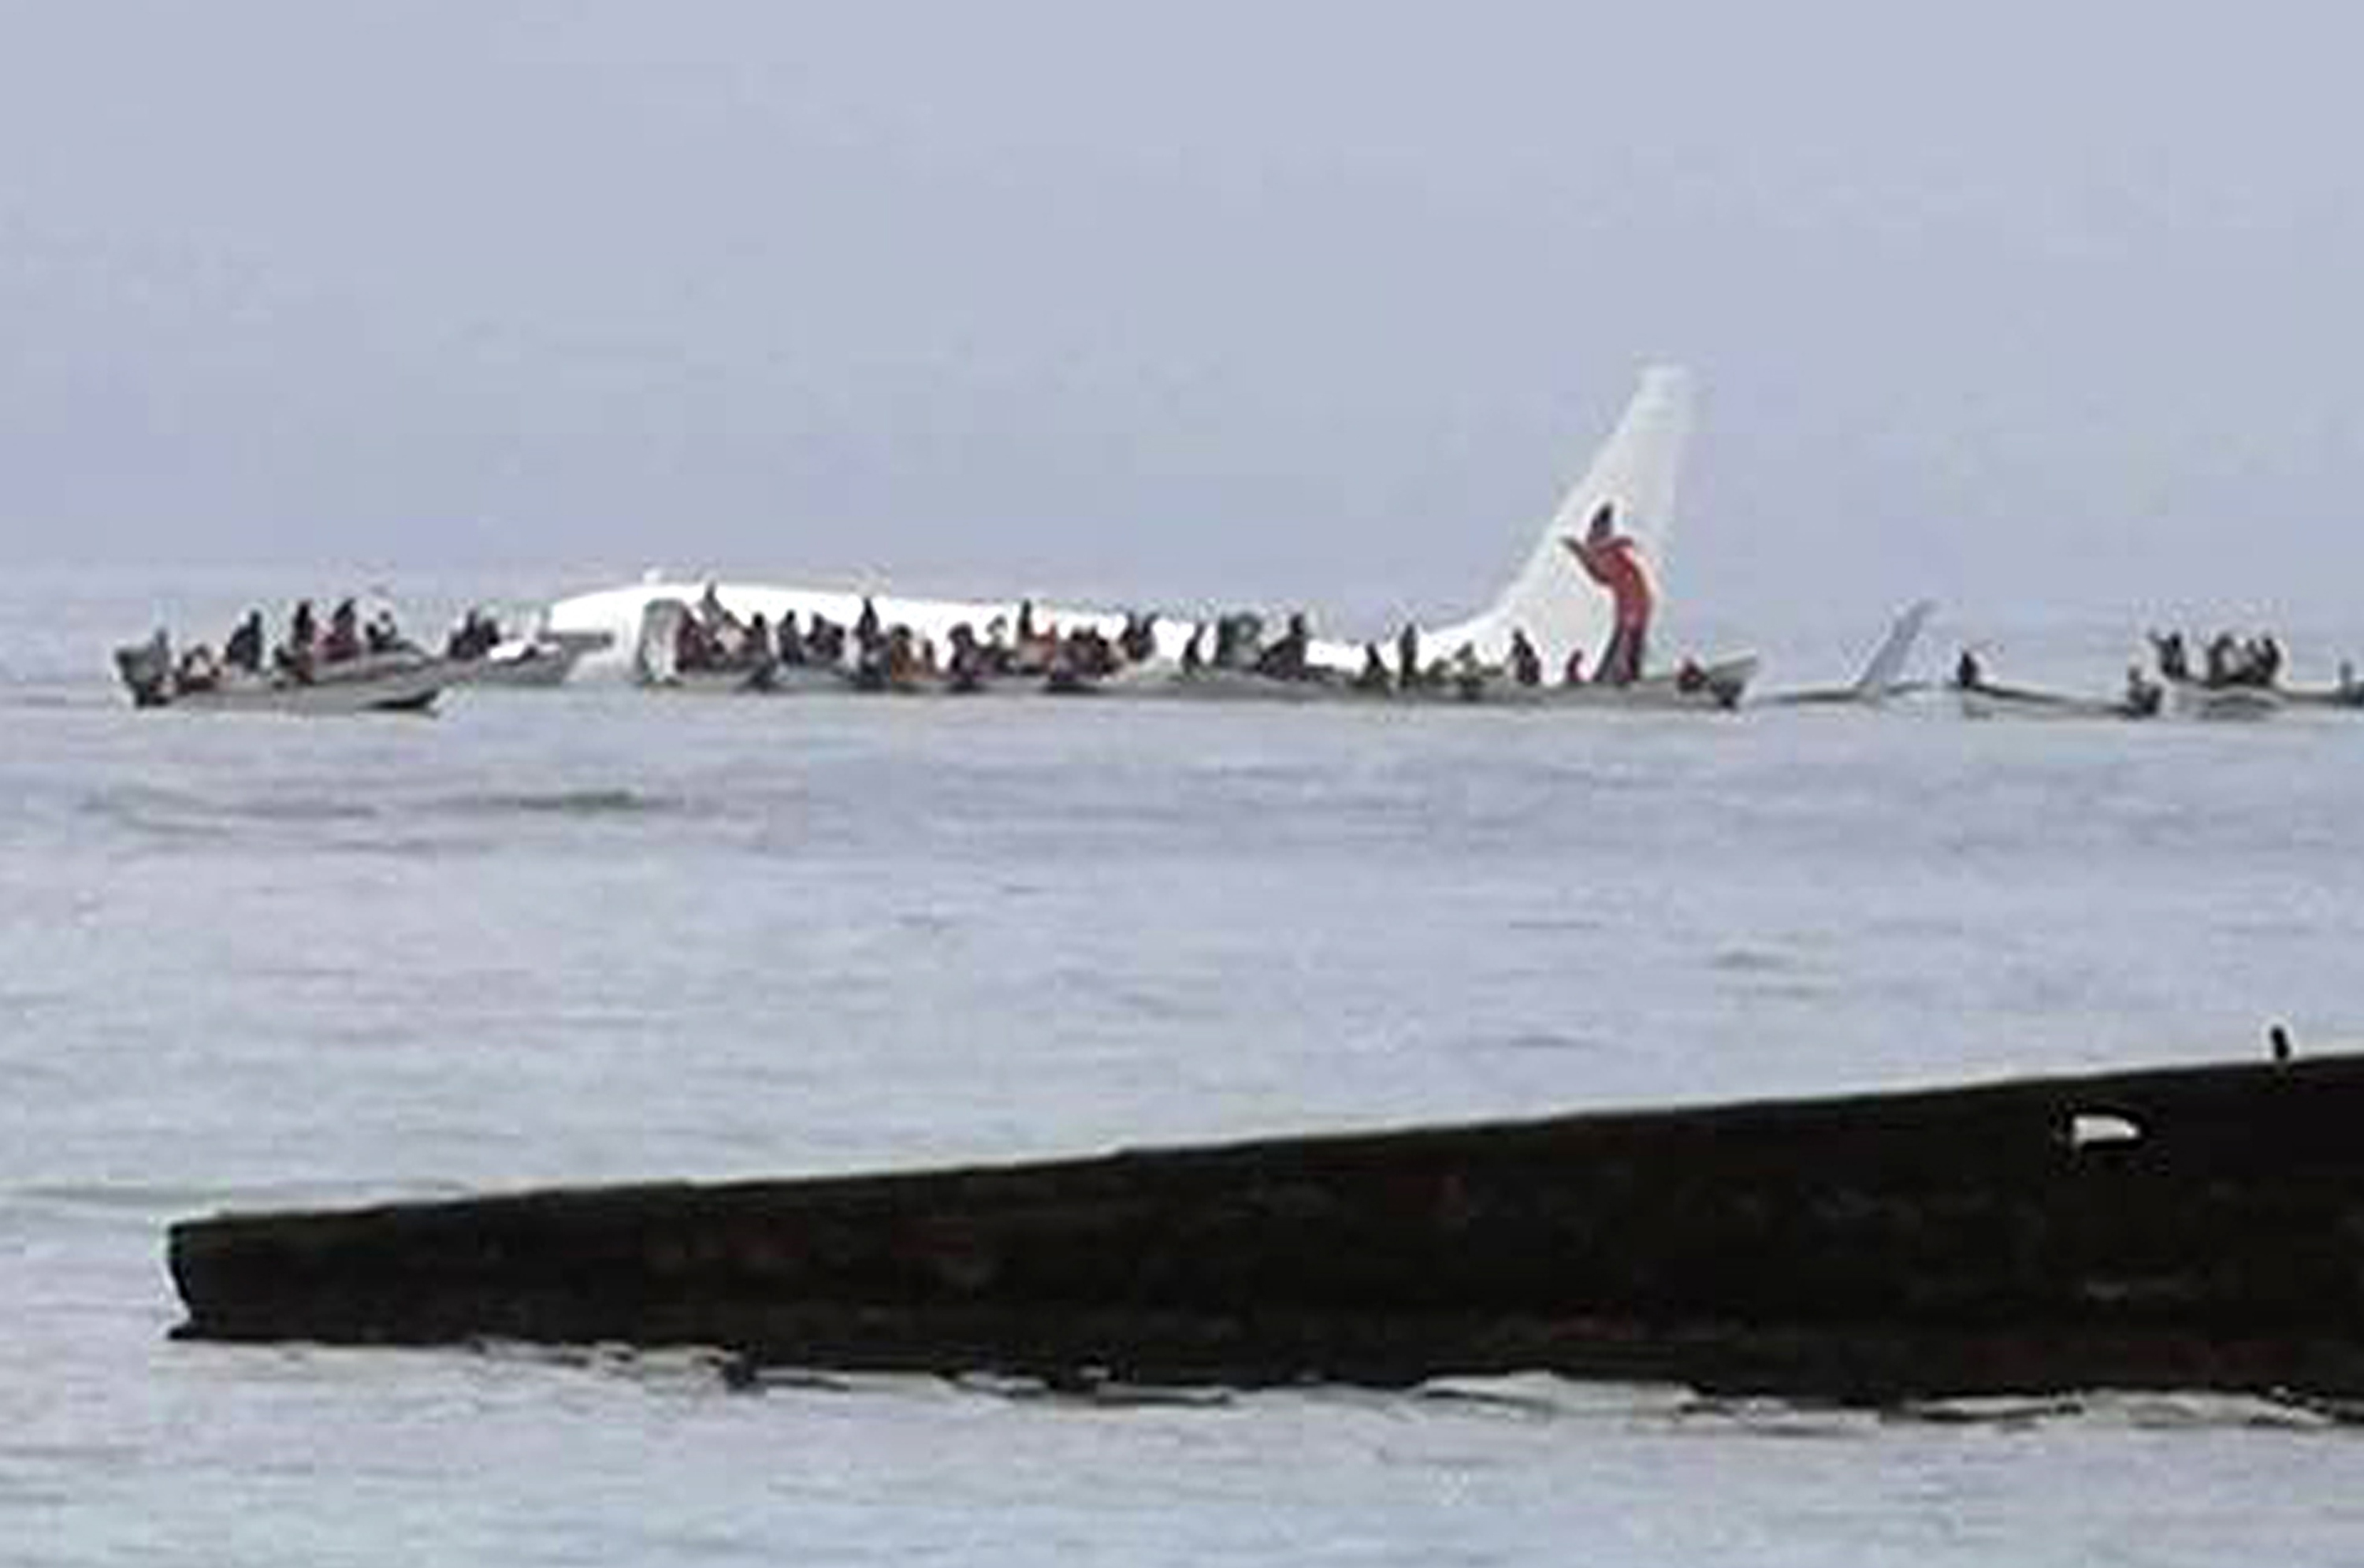 Air Niugini flight overshoots runway in Micronesia and crashes into ocean